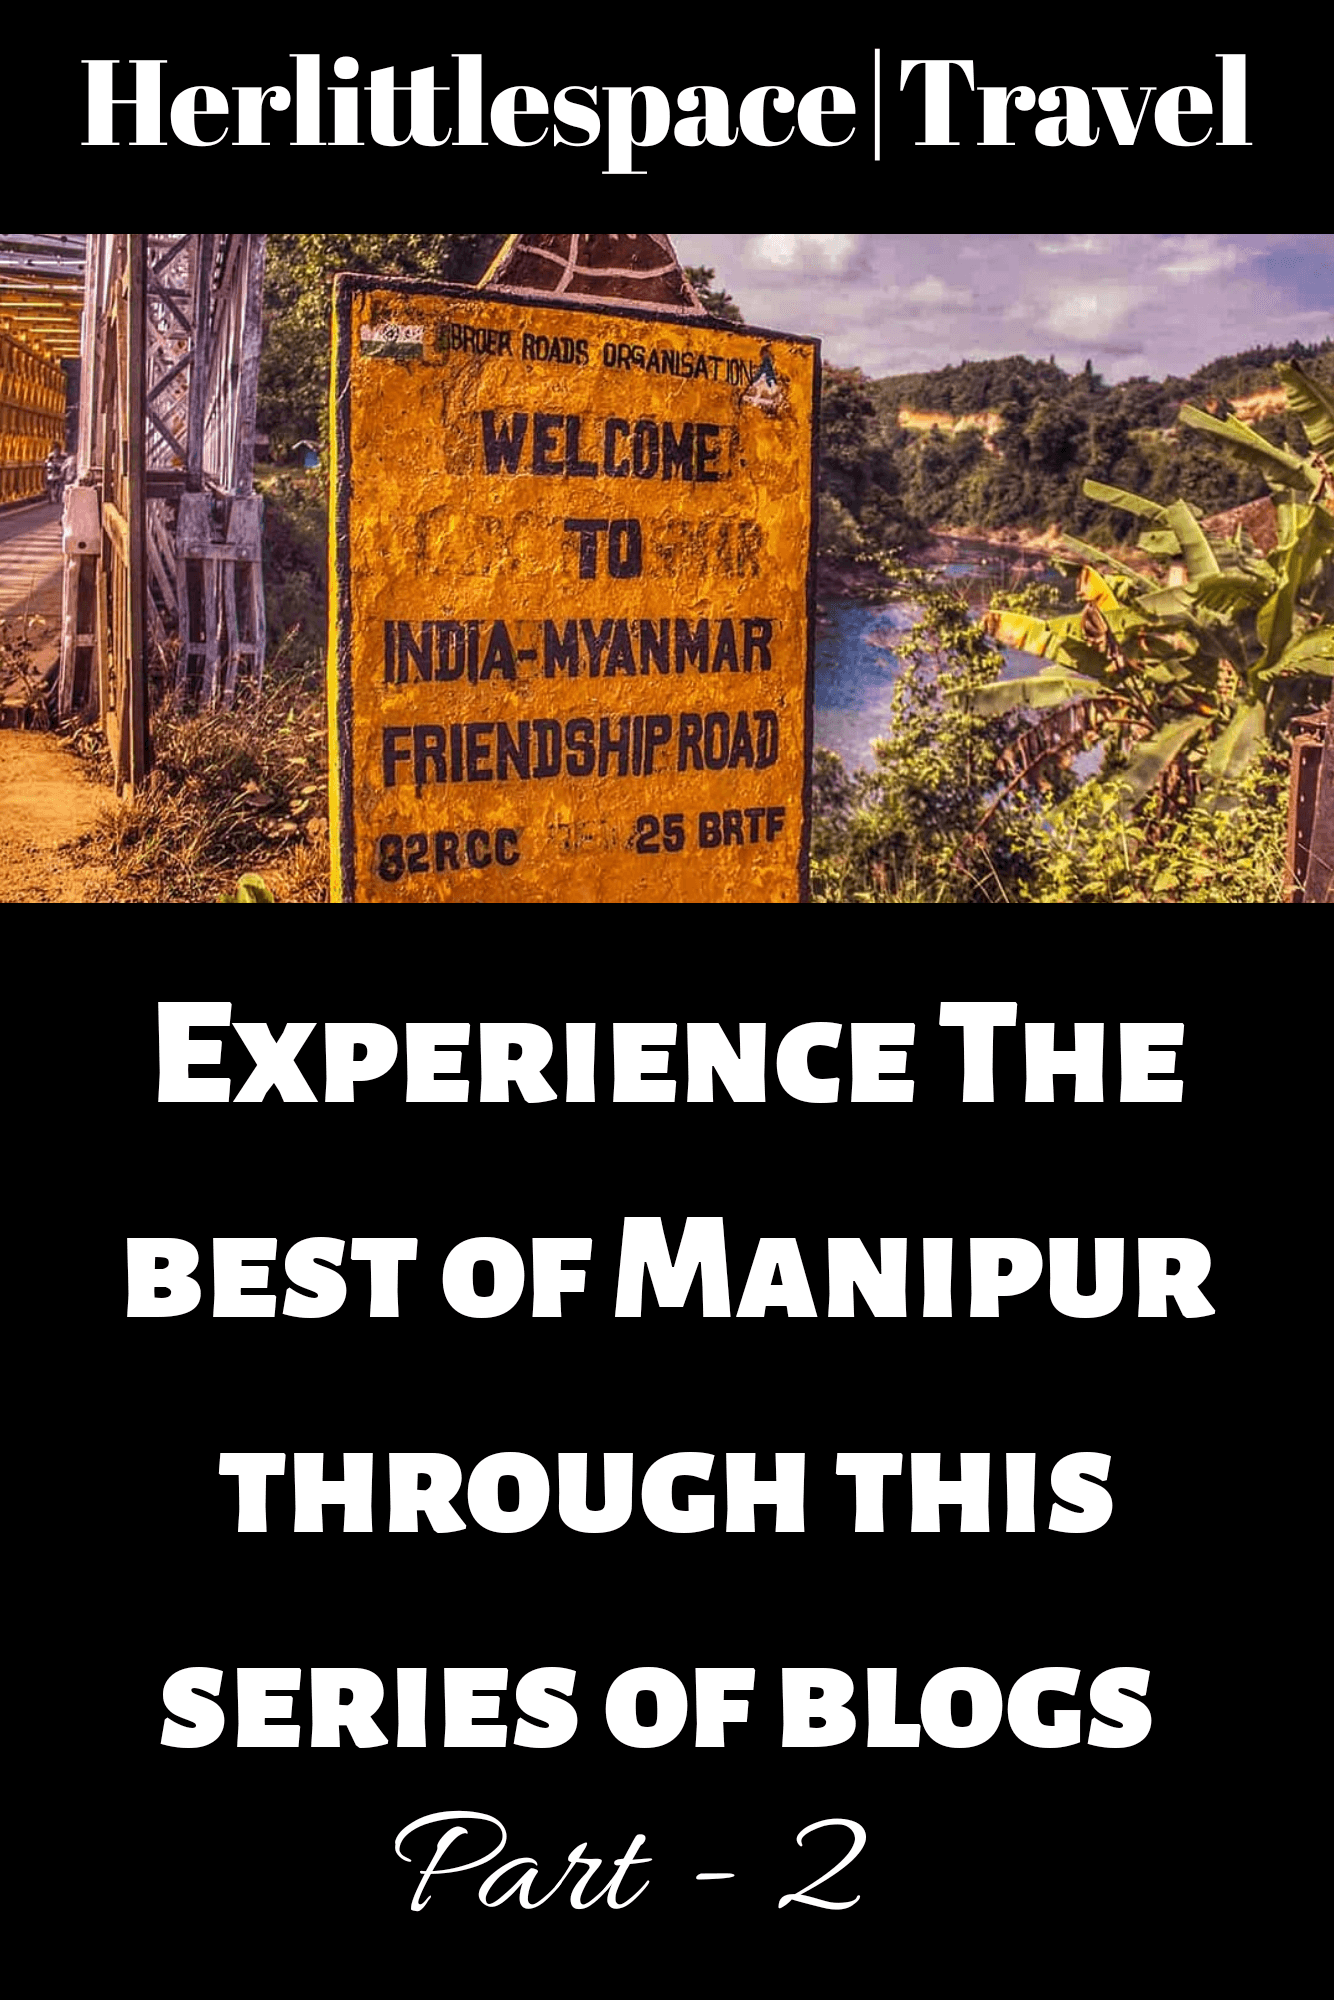 The best of Manipur tourism in a series of blogs - her little space The best of Manipur tourism in a series of blogs – her little space    The best of Manipur tourism #blogs #little #manipur #series #space #tourism #Travelstoriesindia